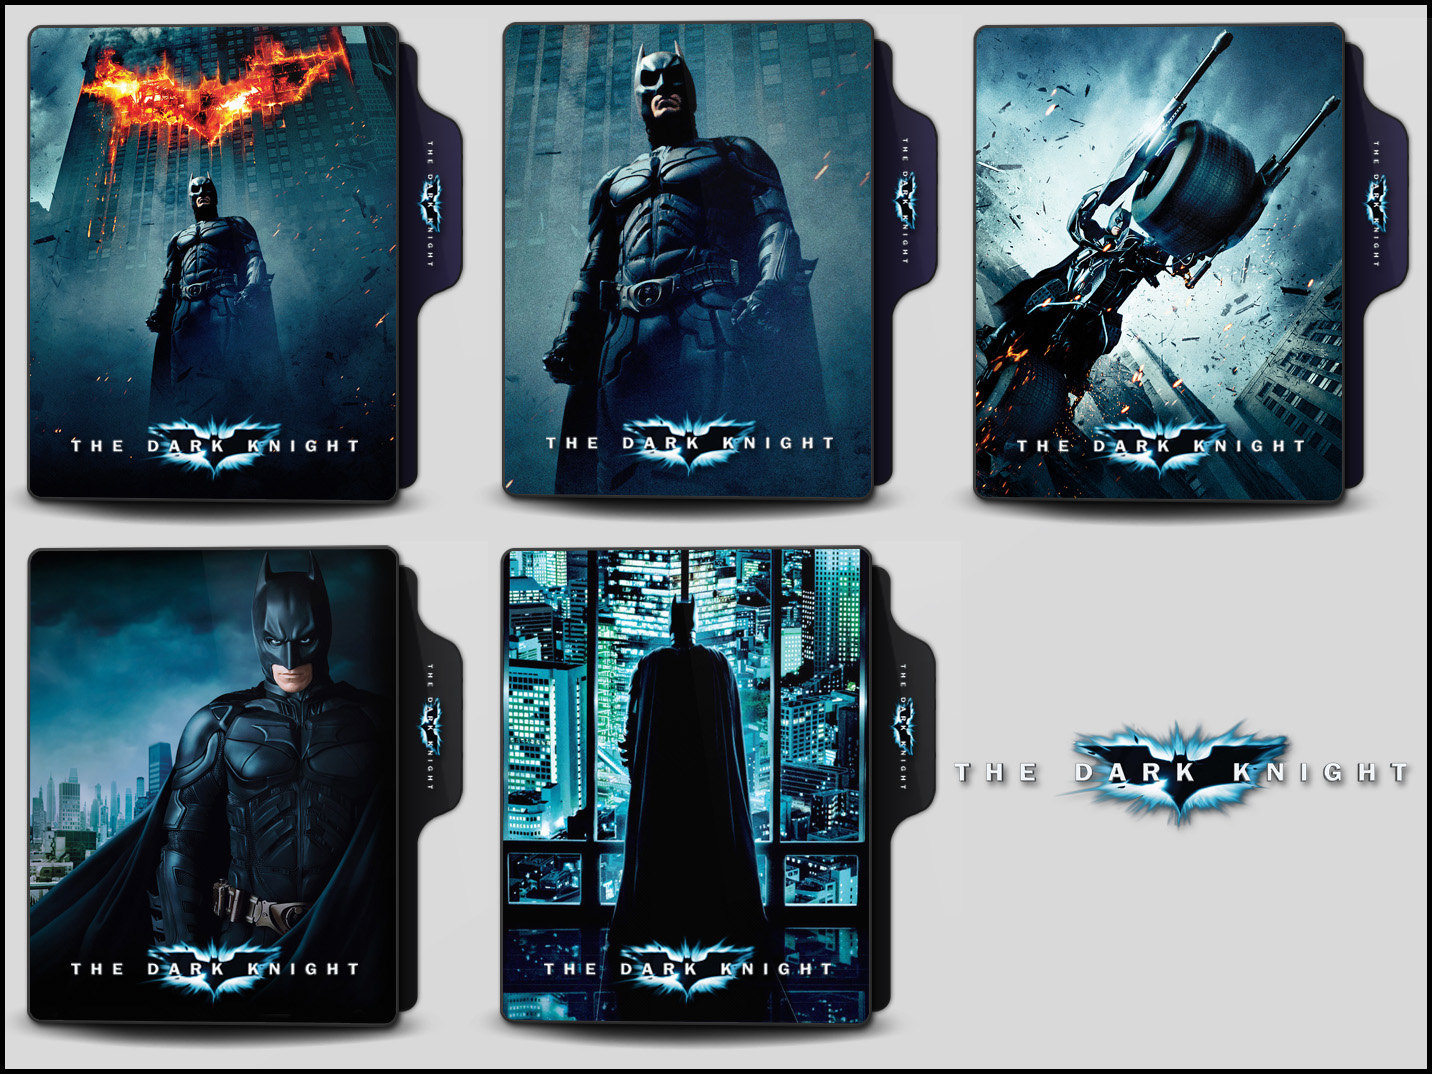 The Dark Knight 2008 Folder Icons By Onlystylematters On Deviantart